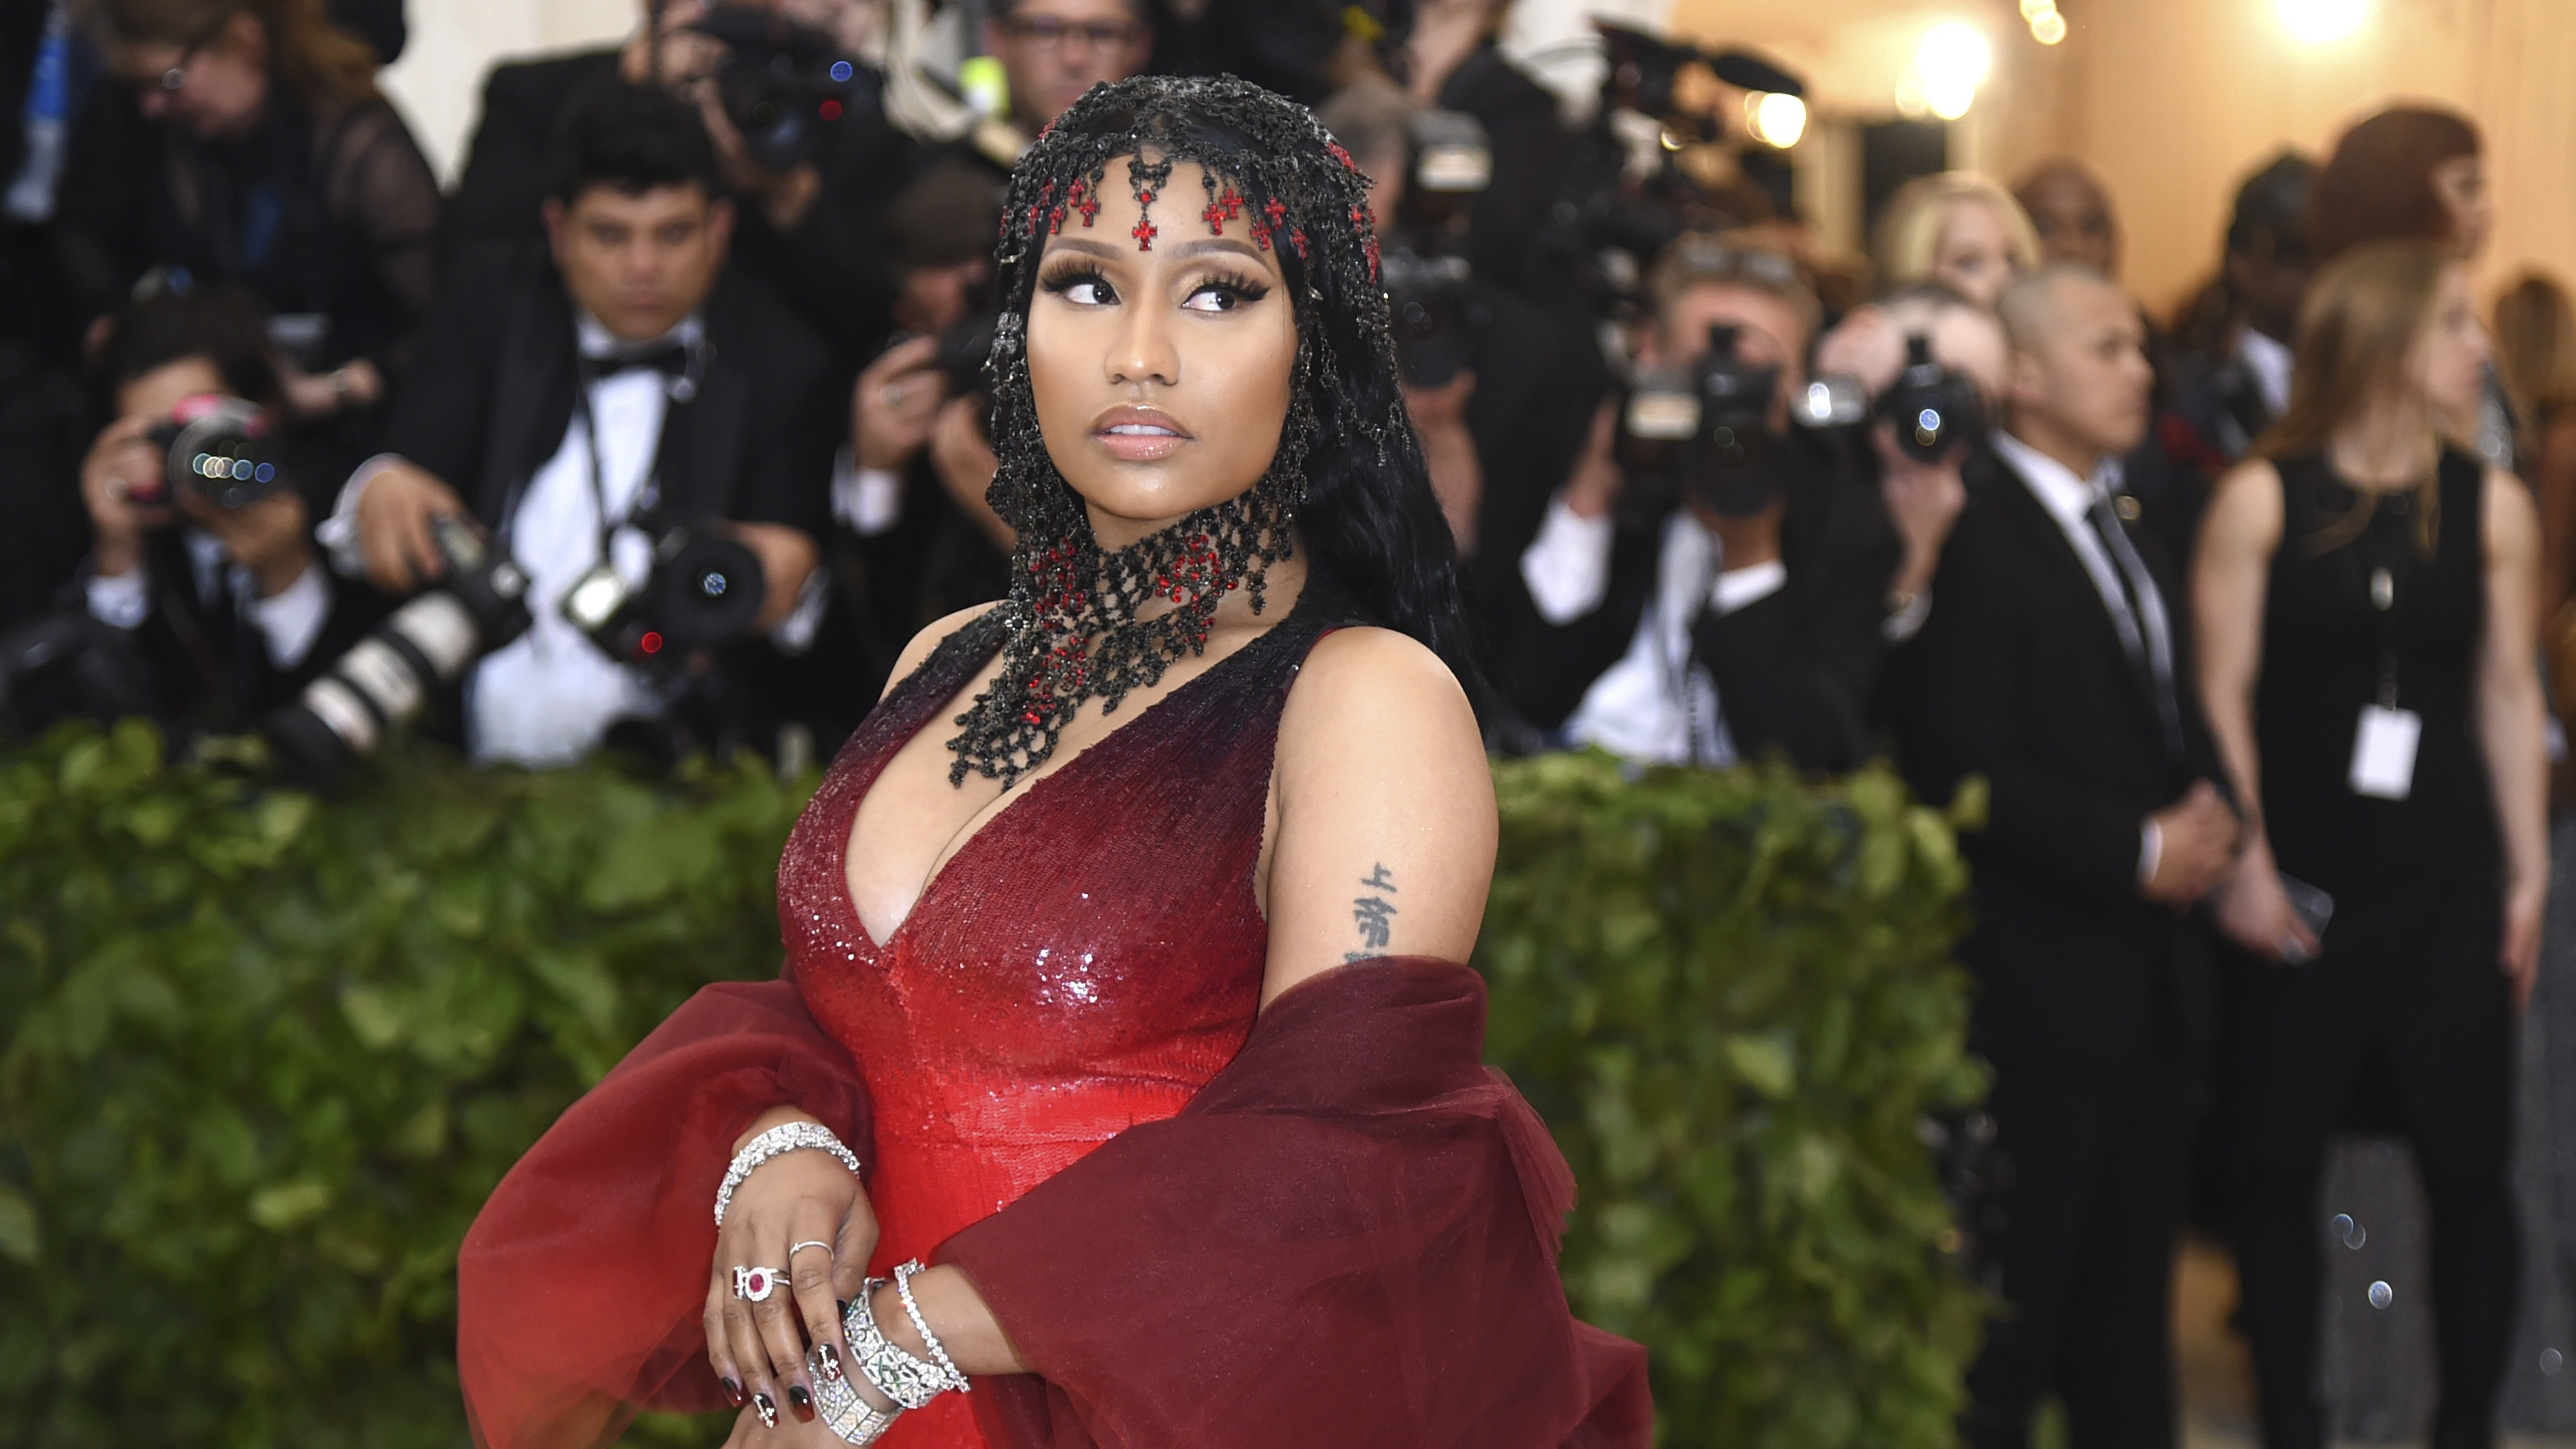 Cardi B's Met Gala Look Is Pregnancy Style at Its Most Extra